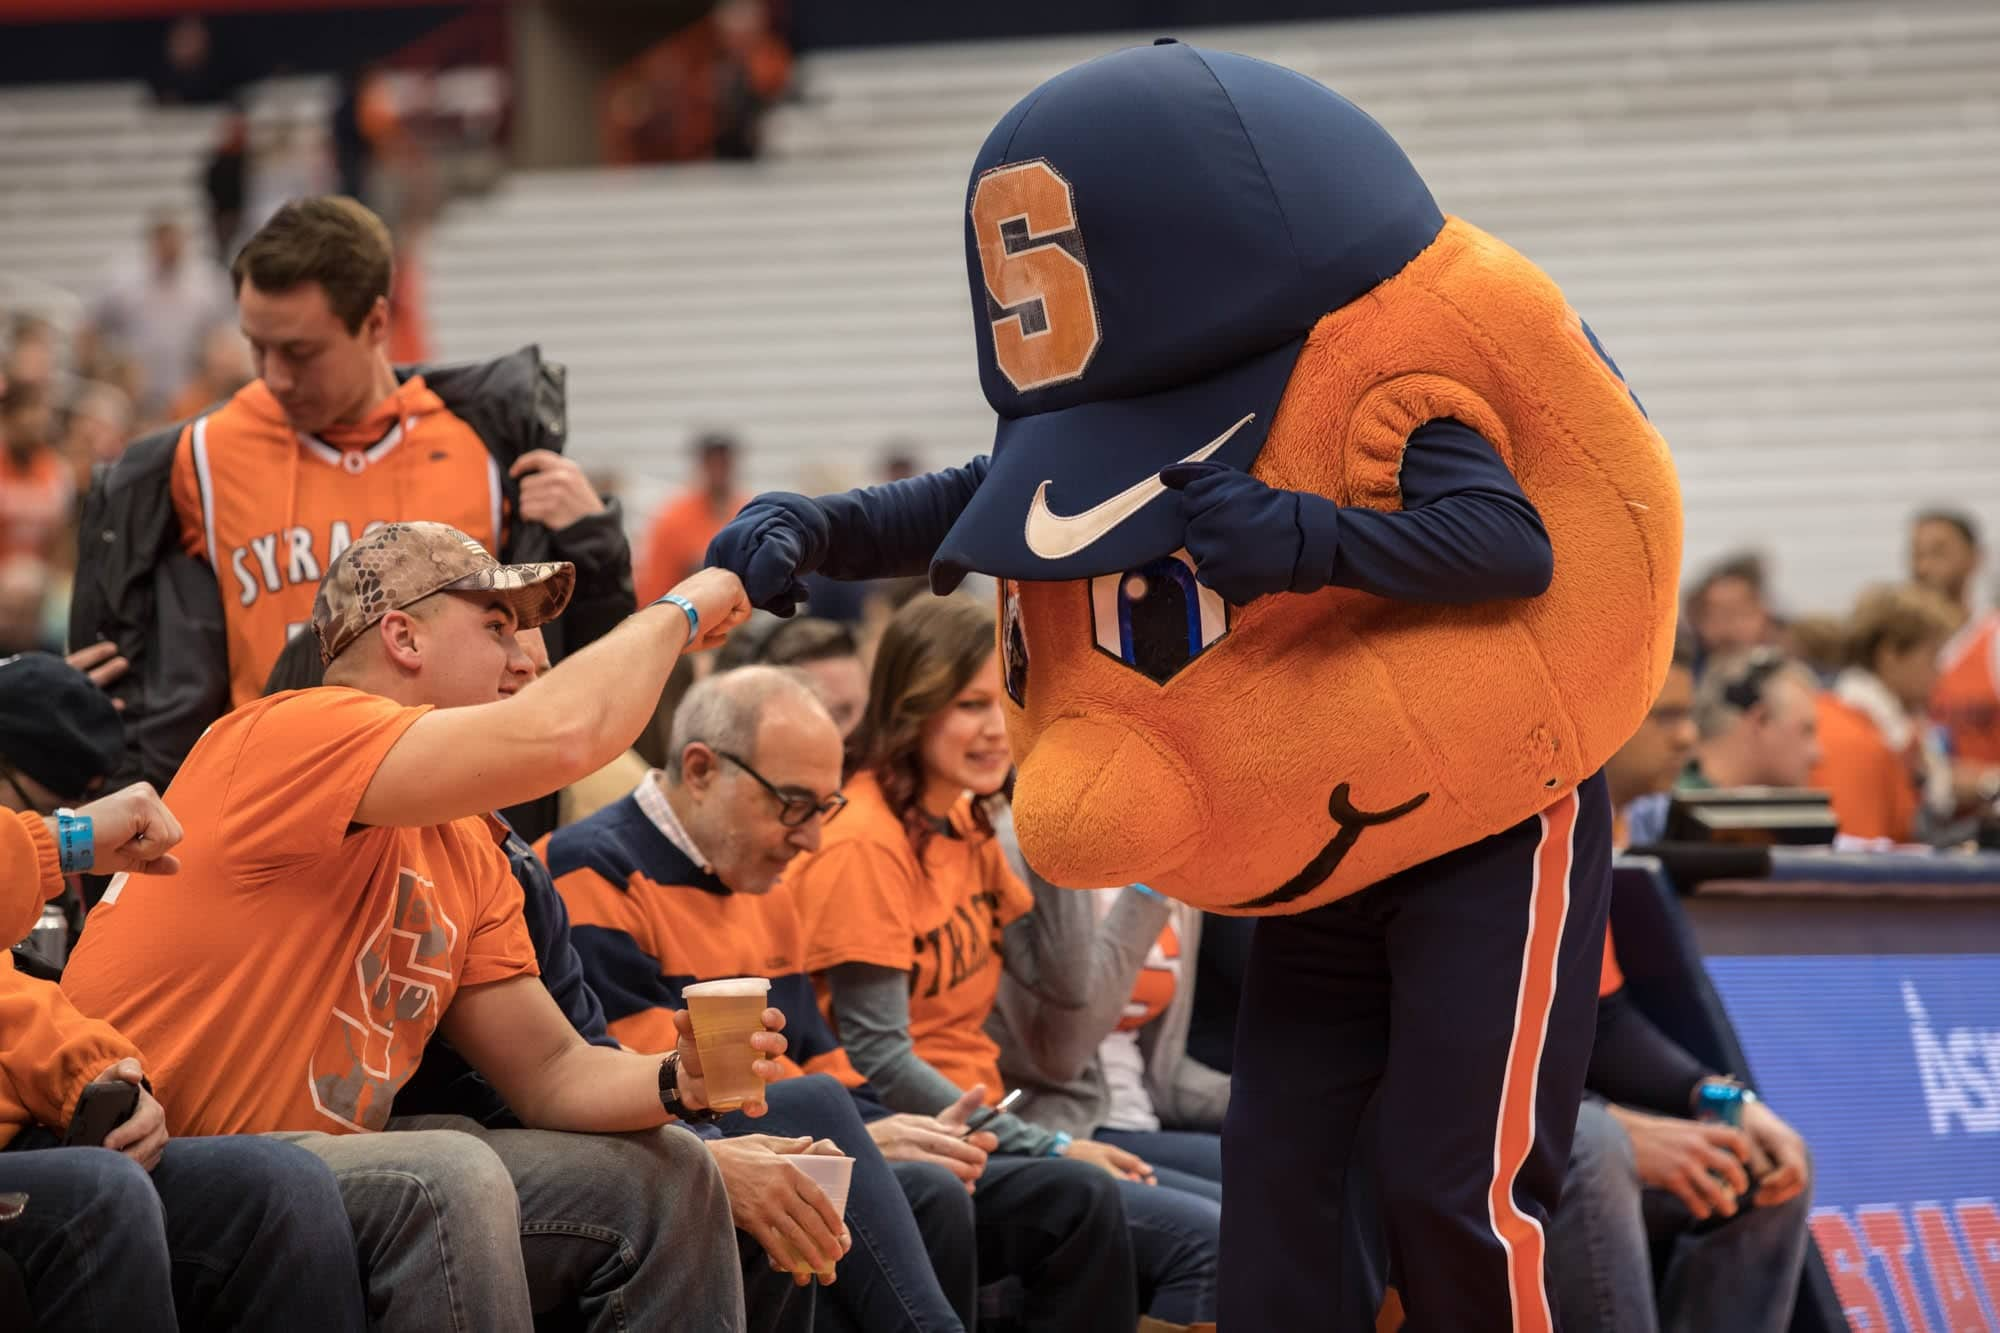 Otto the Orange fist bumps a fan